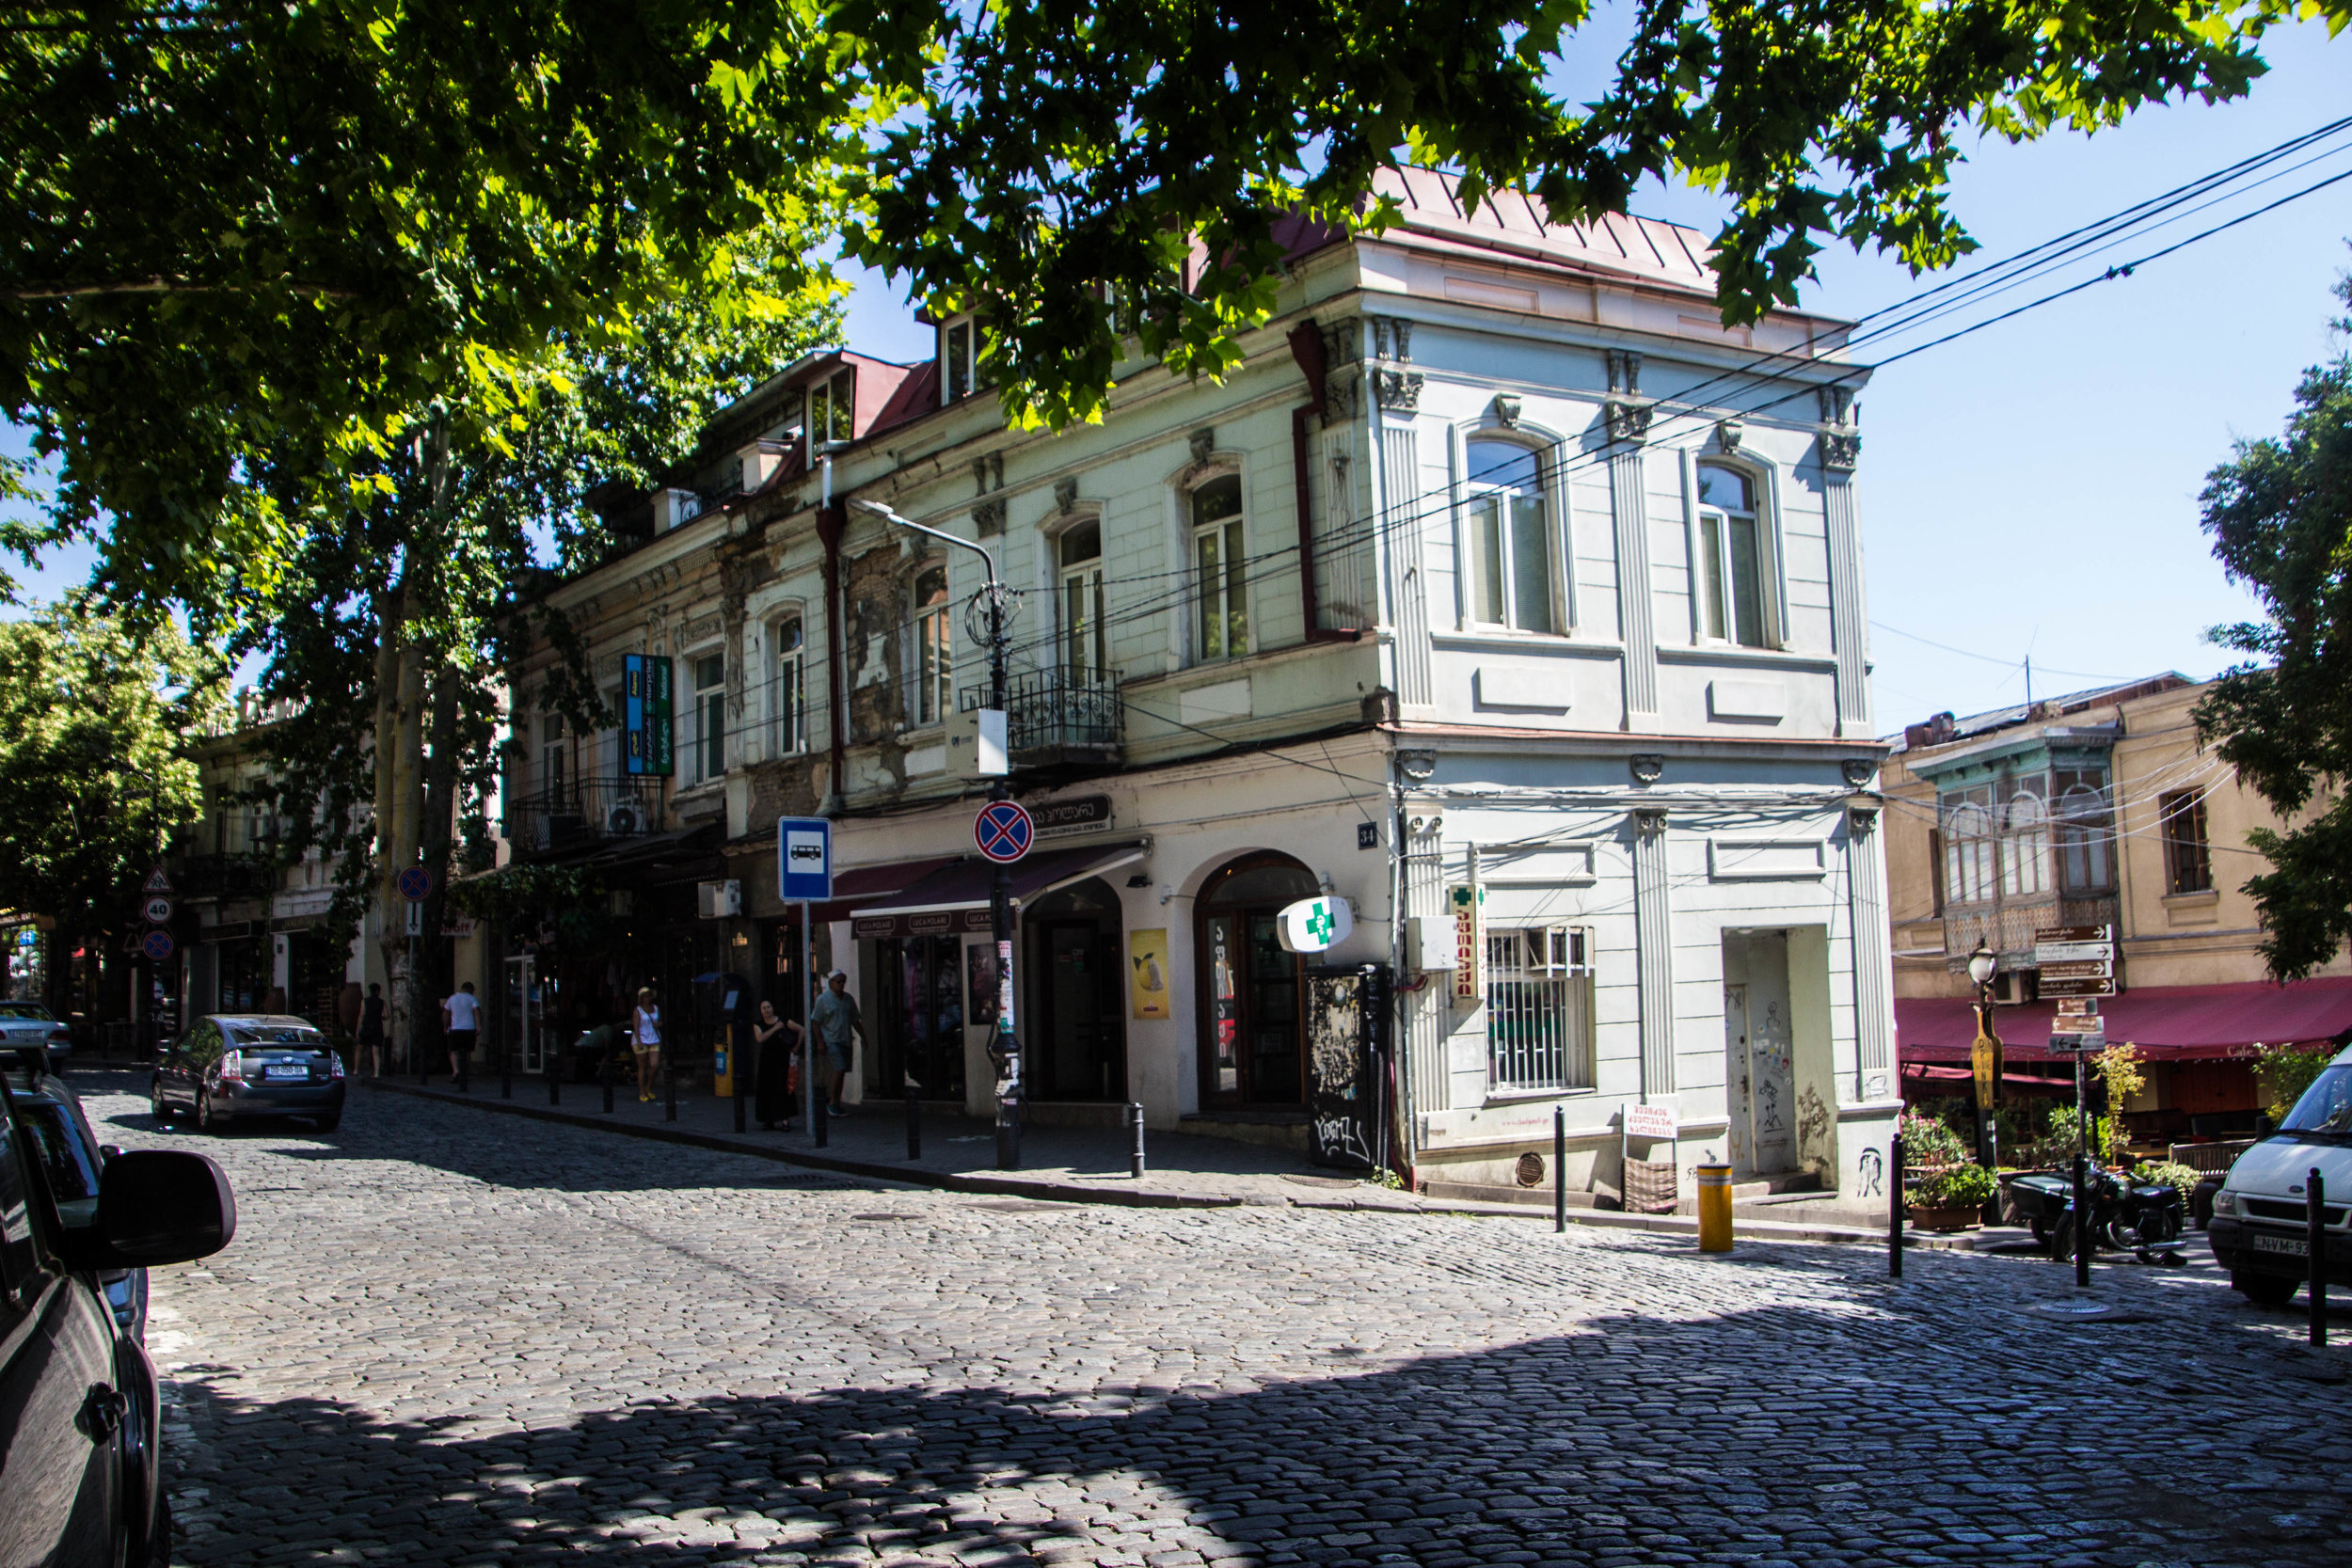 streets-of-tbilisi-georgia-3.jpg